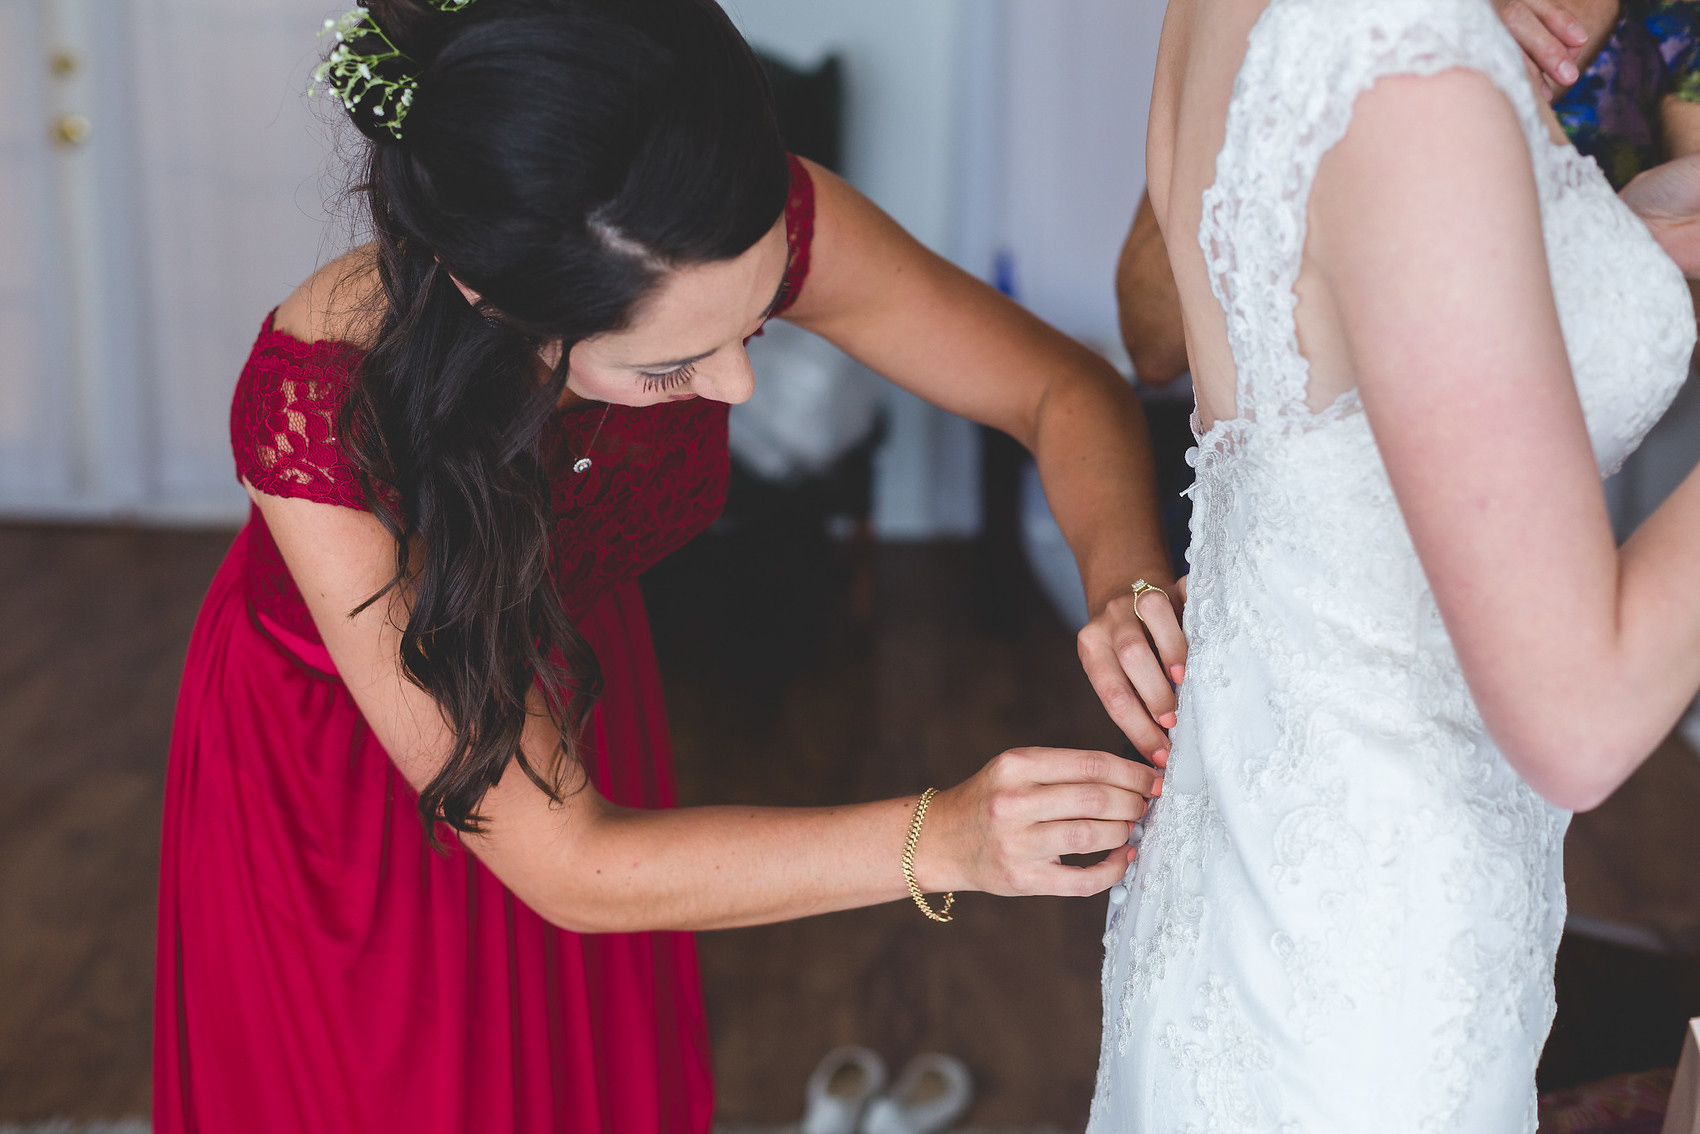 Adam-Szrmack-Bowing-the-white-room-st-augustine-wedding-photographer-13.jpg